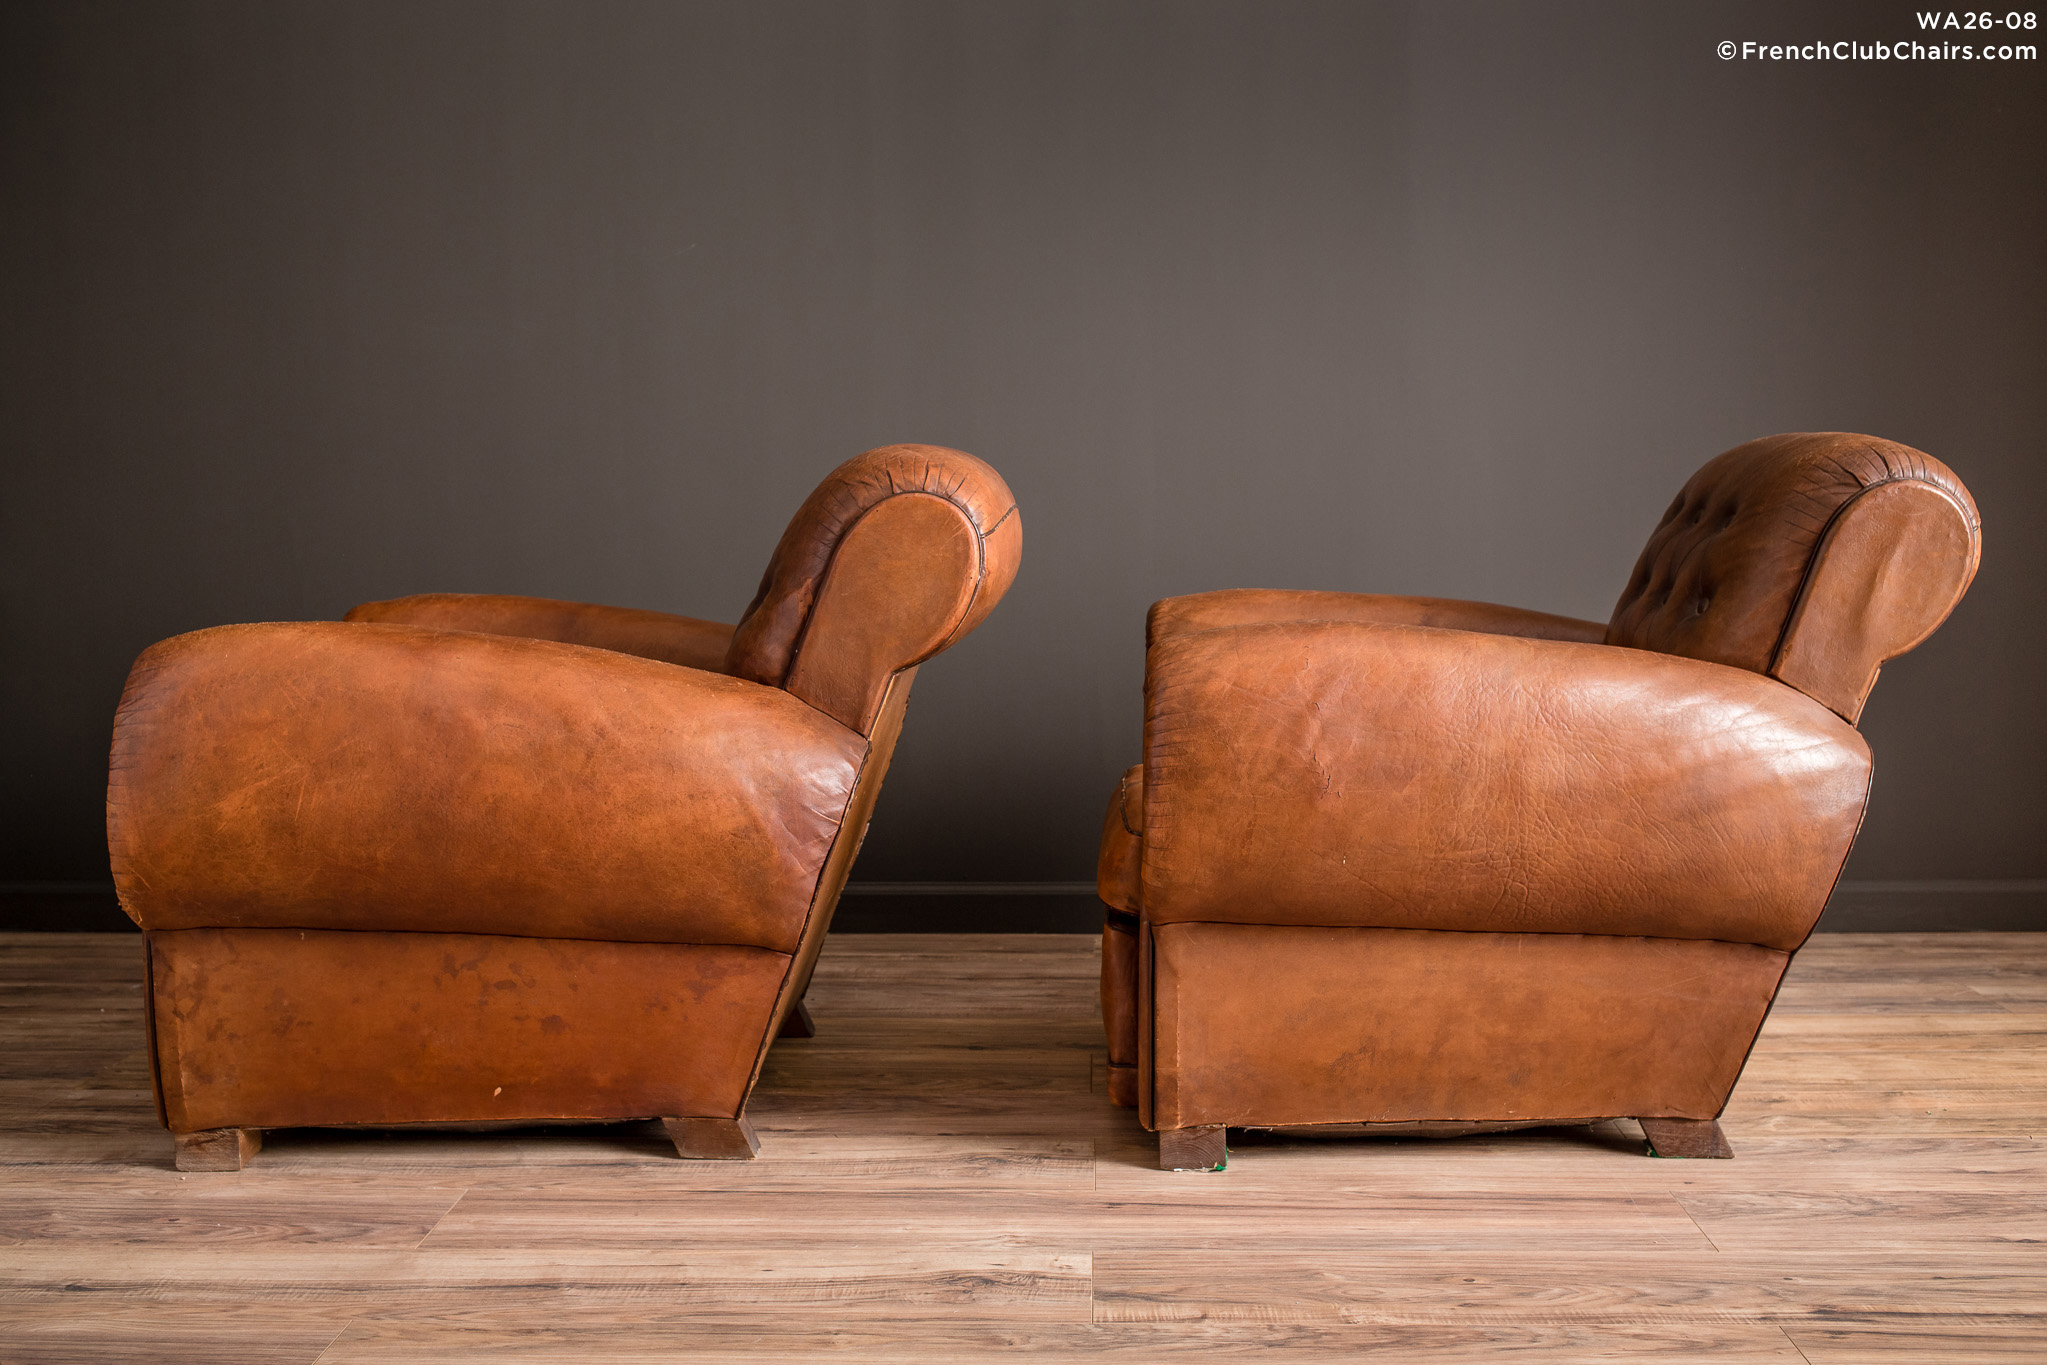 WA_26-08_Pigalle_Rollback_Classic_Pair_R_4LT-v01-williams-antiks-leather-french-club-chair-wa_fcccom